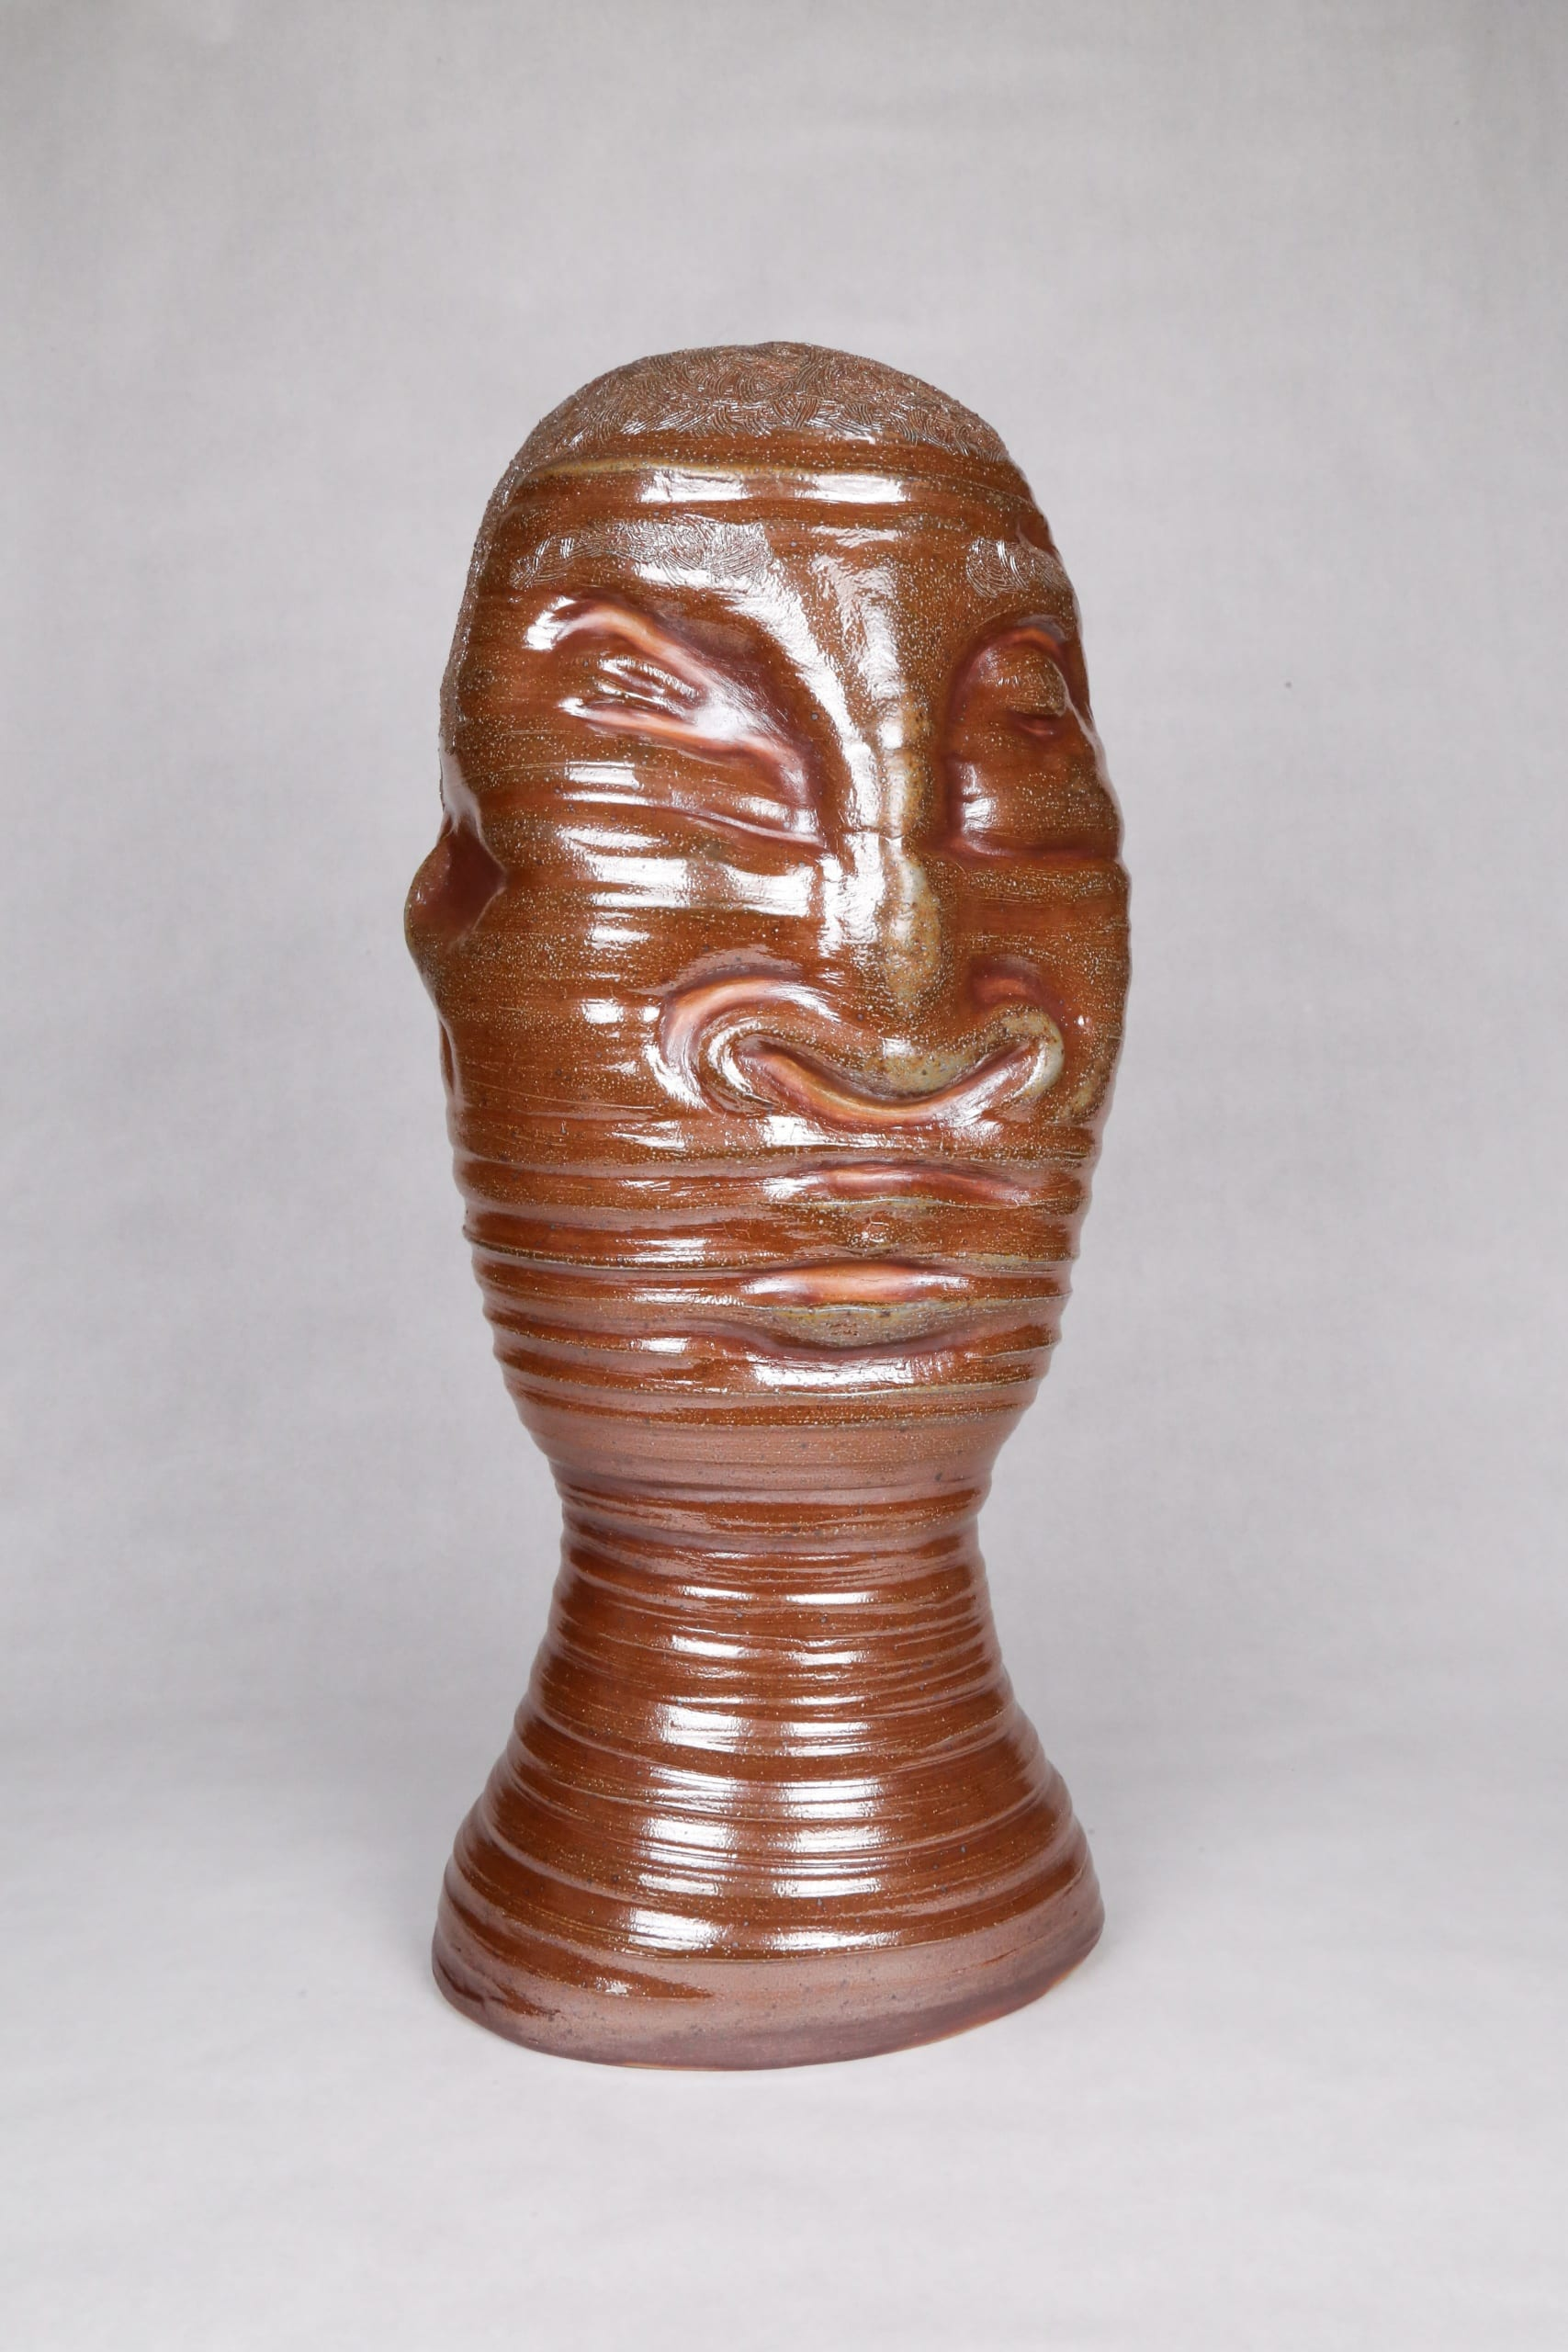 Color photograph with a frontal view of an abstract ceramic portrait head, with distinctive ridges wrapping around the circumfrance of the head. The object is monochromatic (warm brown) with a light, luminescent glaze applied to its surface. It appears as though it was made on a spinning potter's wheel.